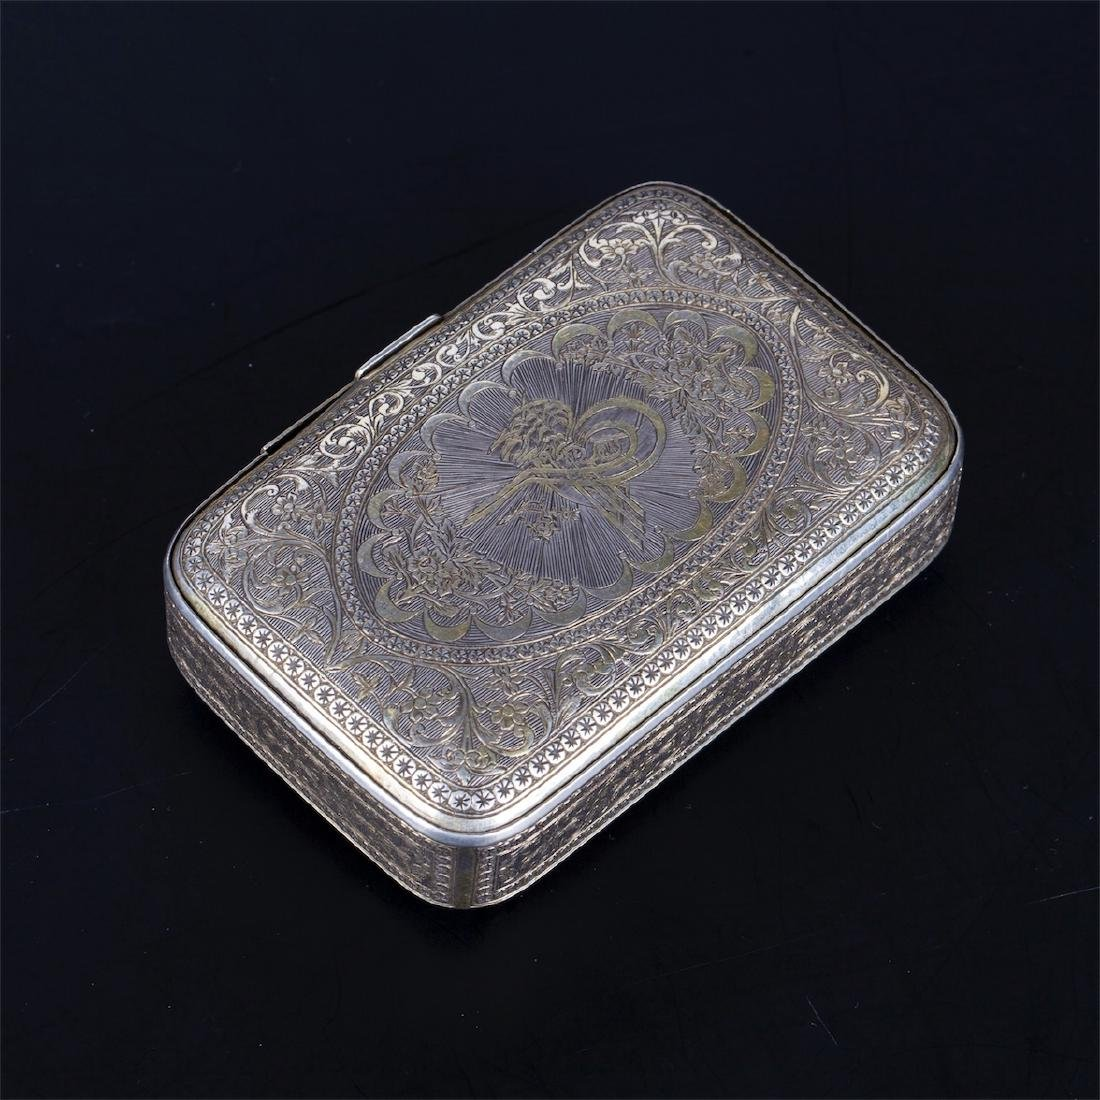 Antique Turkish silver cigarette case with a floral - 3